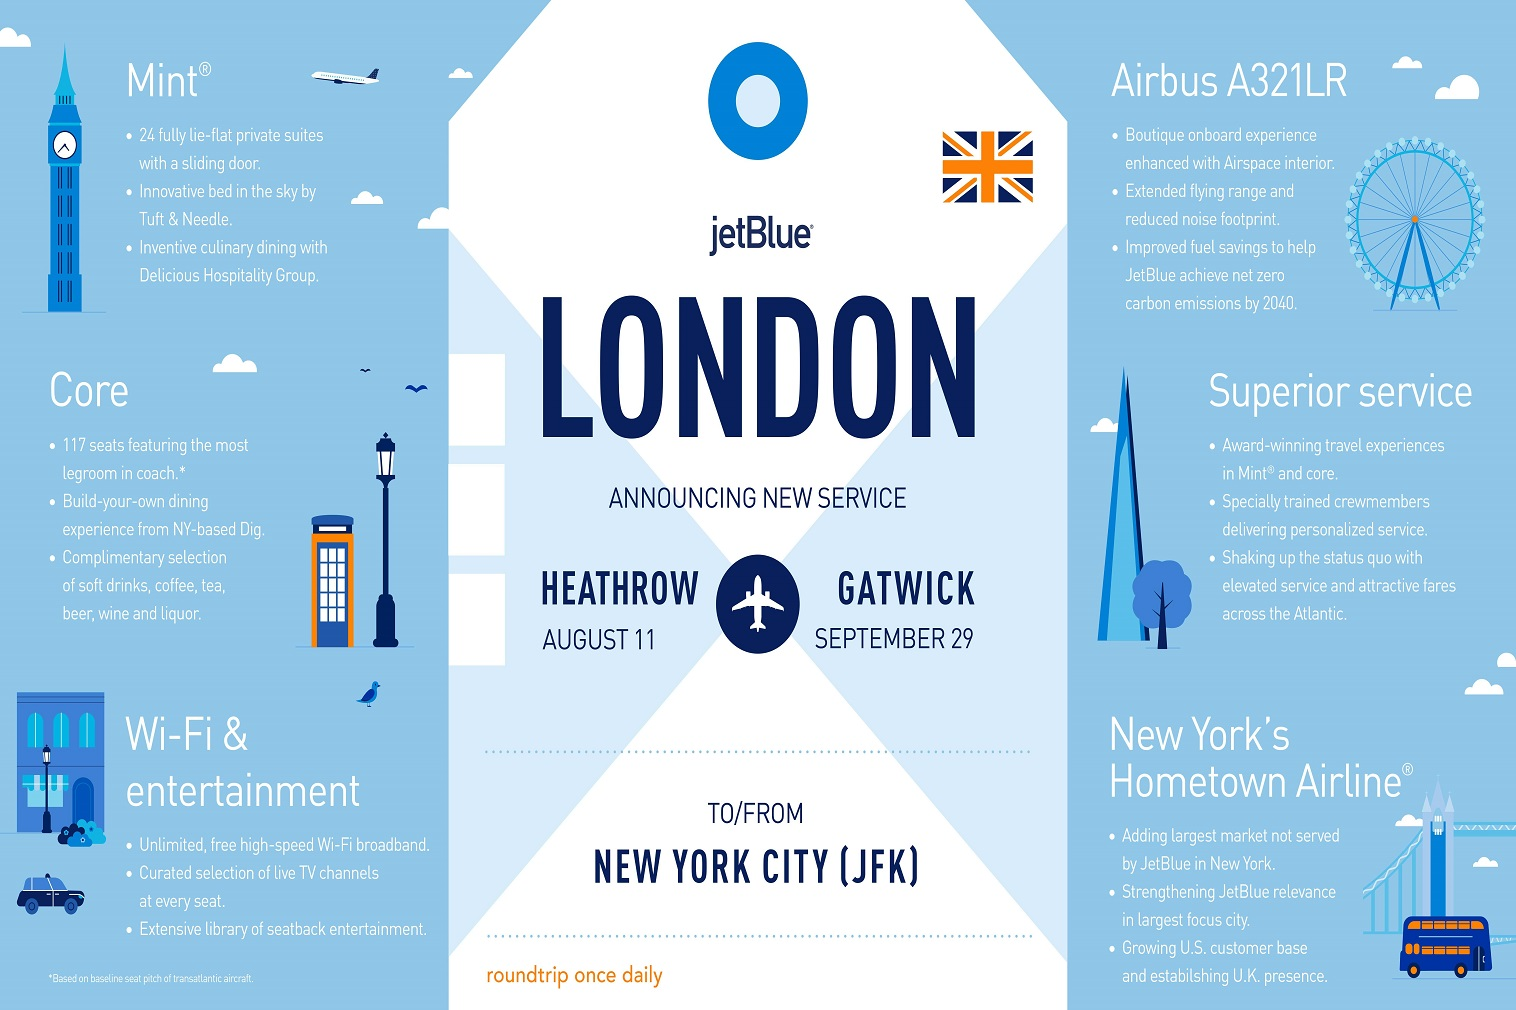 Located just 14 miles west of Central London, Heathrow was the second busiest airport in the world by international traffic in 2019. JetBlue's presence at Heathrow gives the U.S.-based brand visibility at an iconic global hub to build a new base of travelers in the U.K. and beyond.